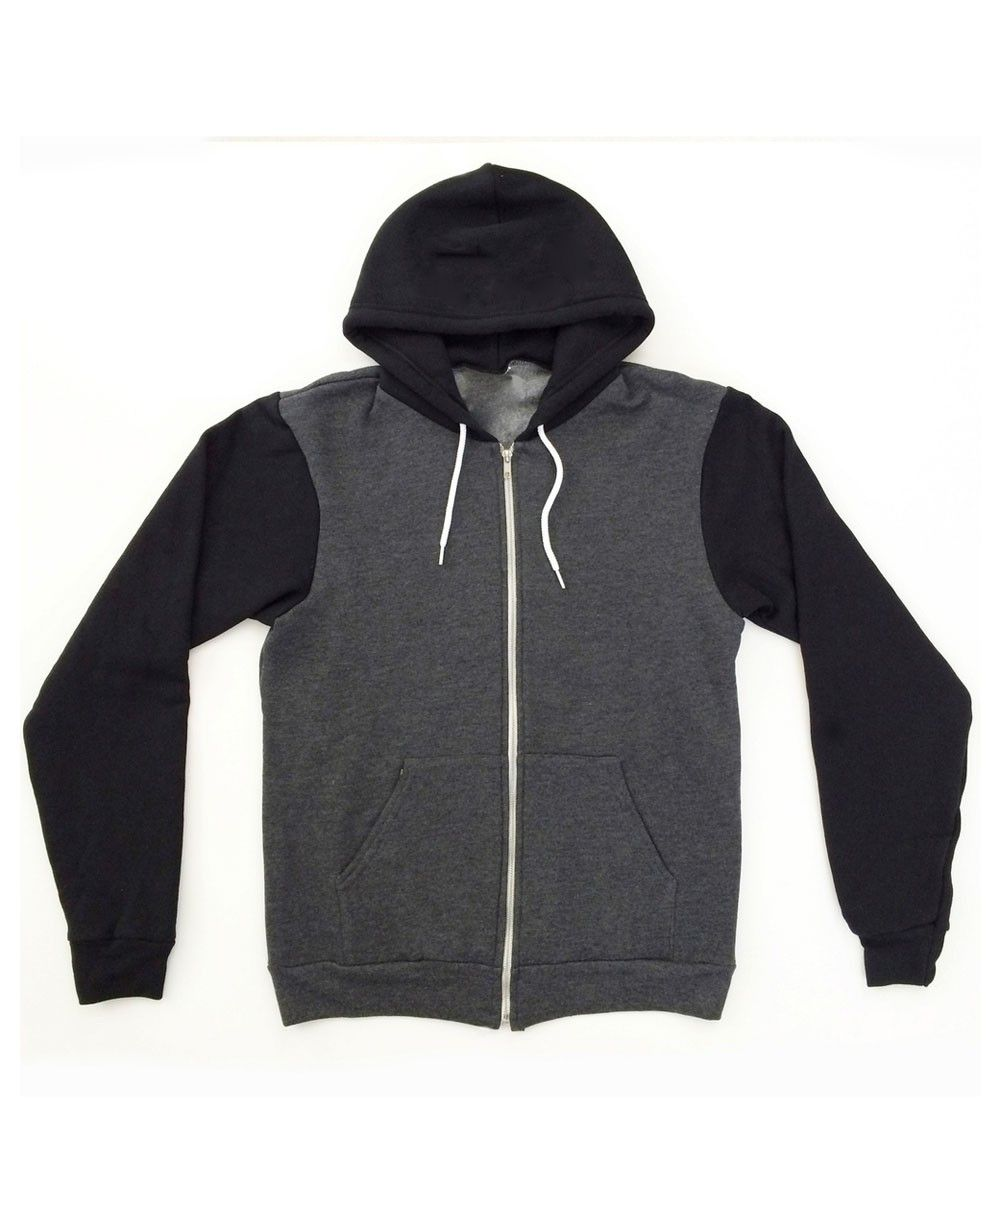 http://www.ready-one.com/mens-black-and-gery-printed-hoodie.html